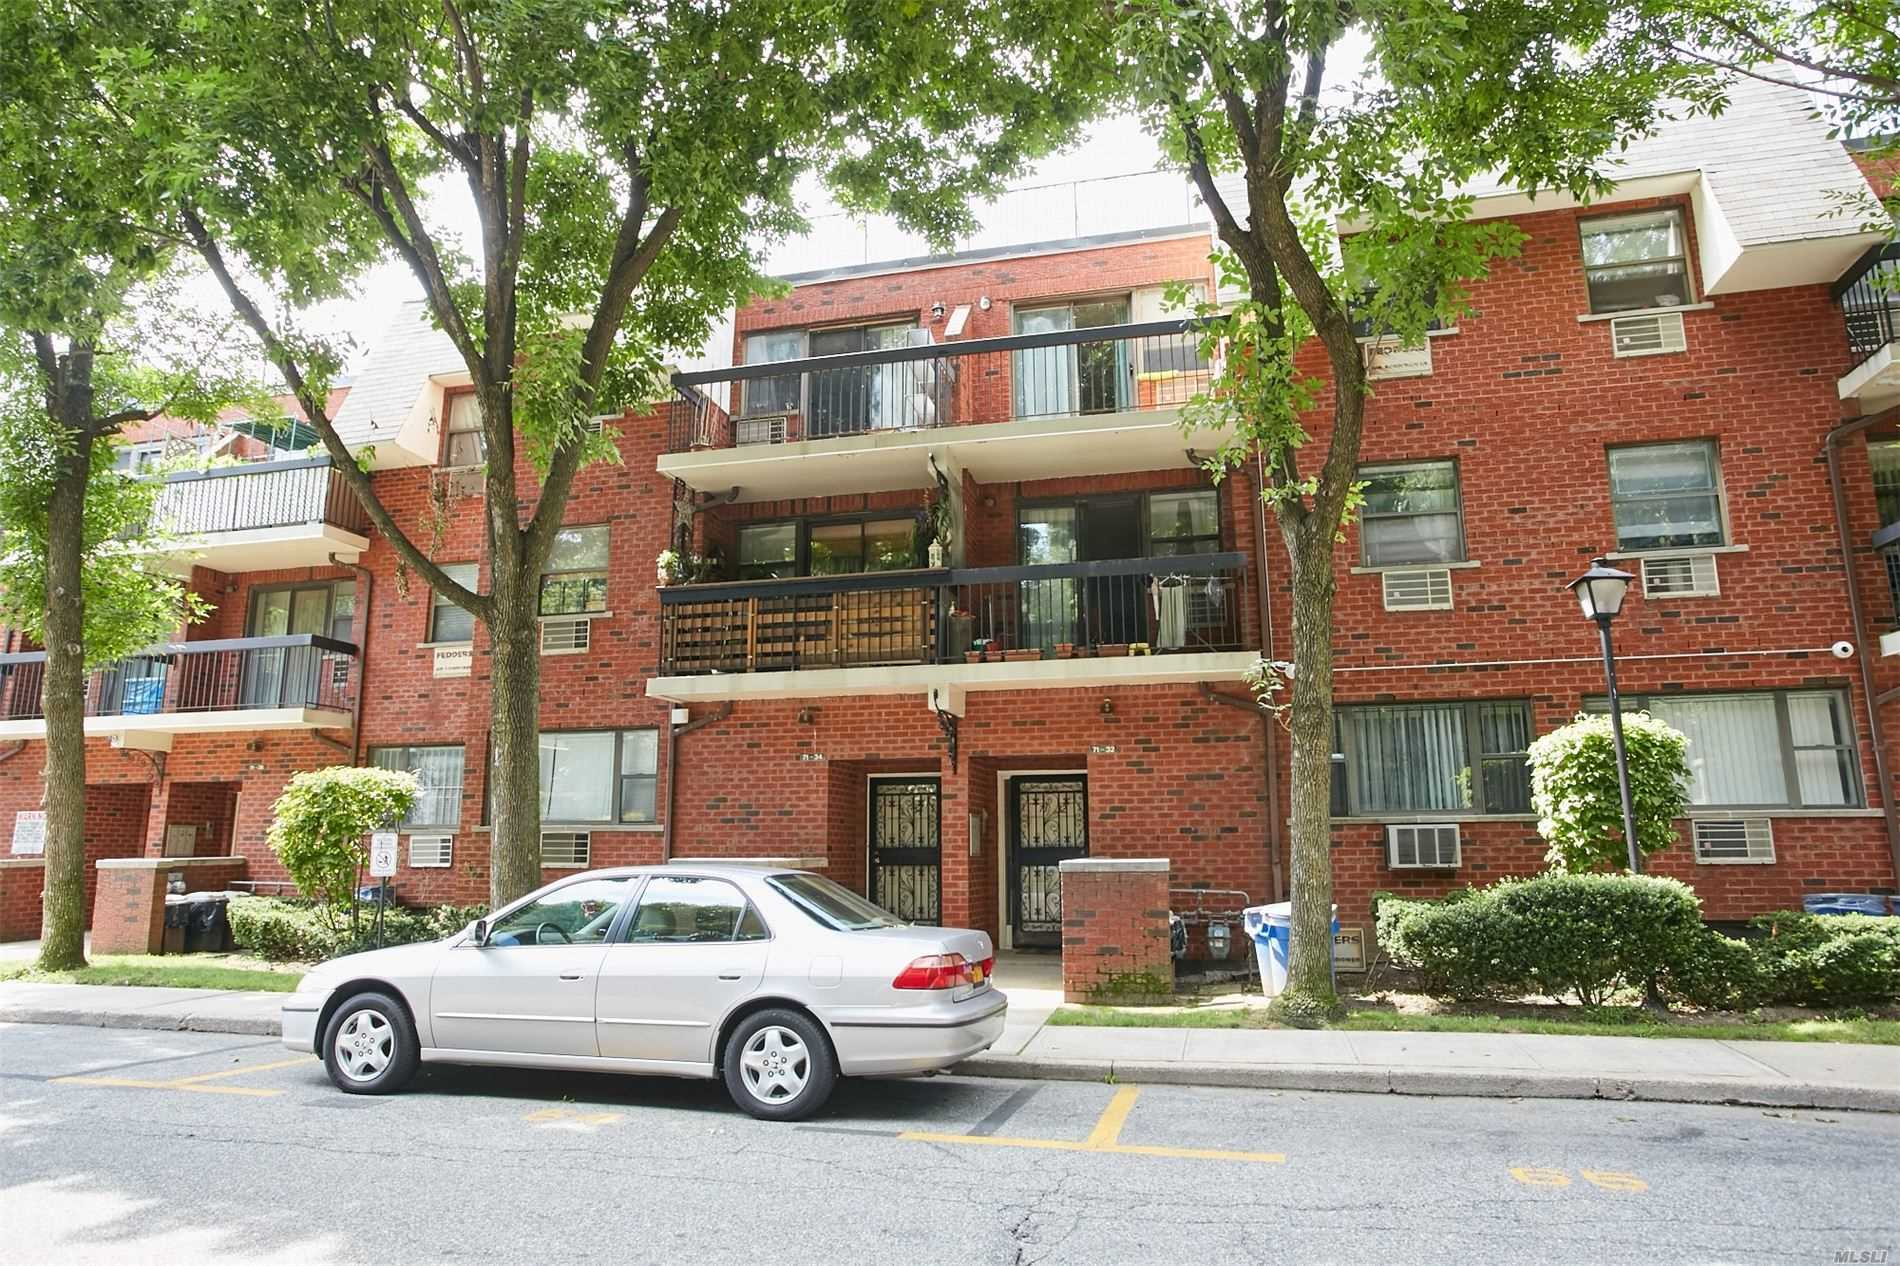 Property for sale at 71-32 Sutton Place, Fresh Meadows NY 11365, Fresh Meadows,  New York 11365